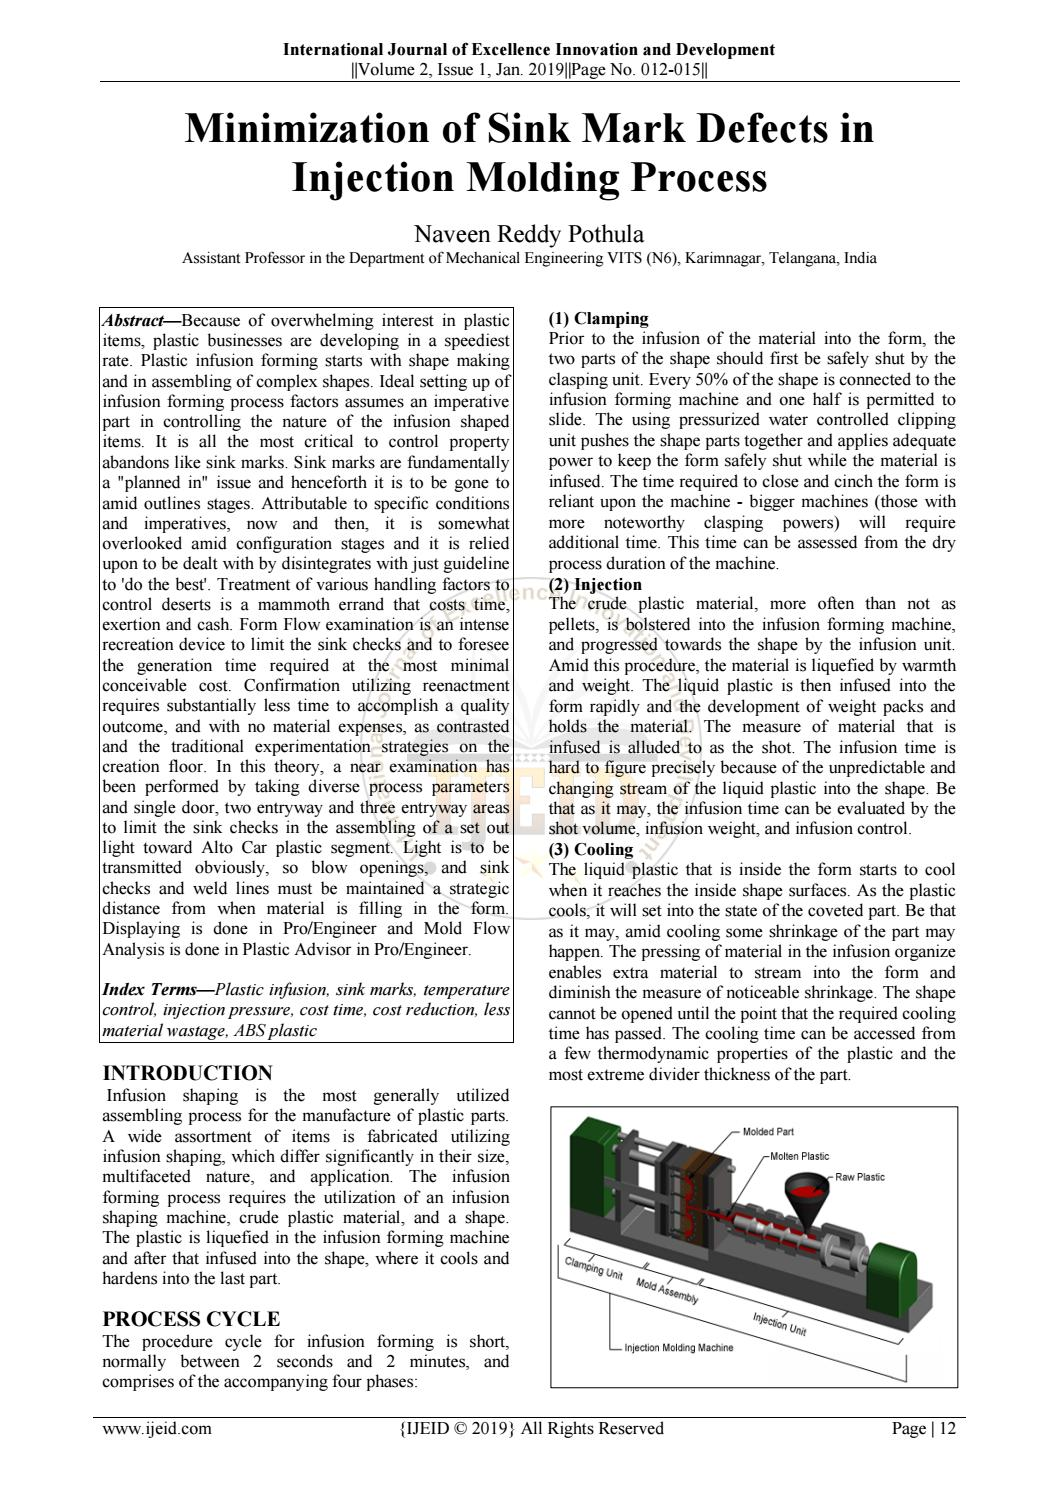 Minimization of Sink Mark Defects in Injection Molding